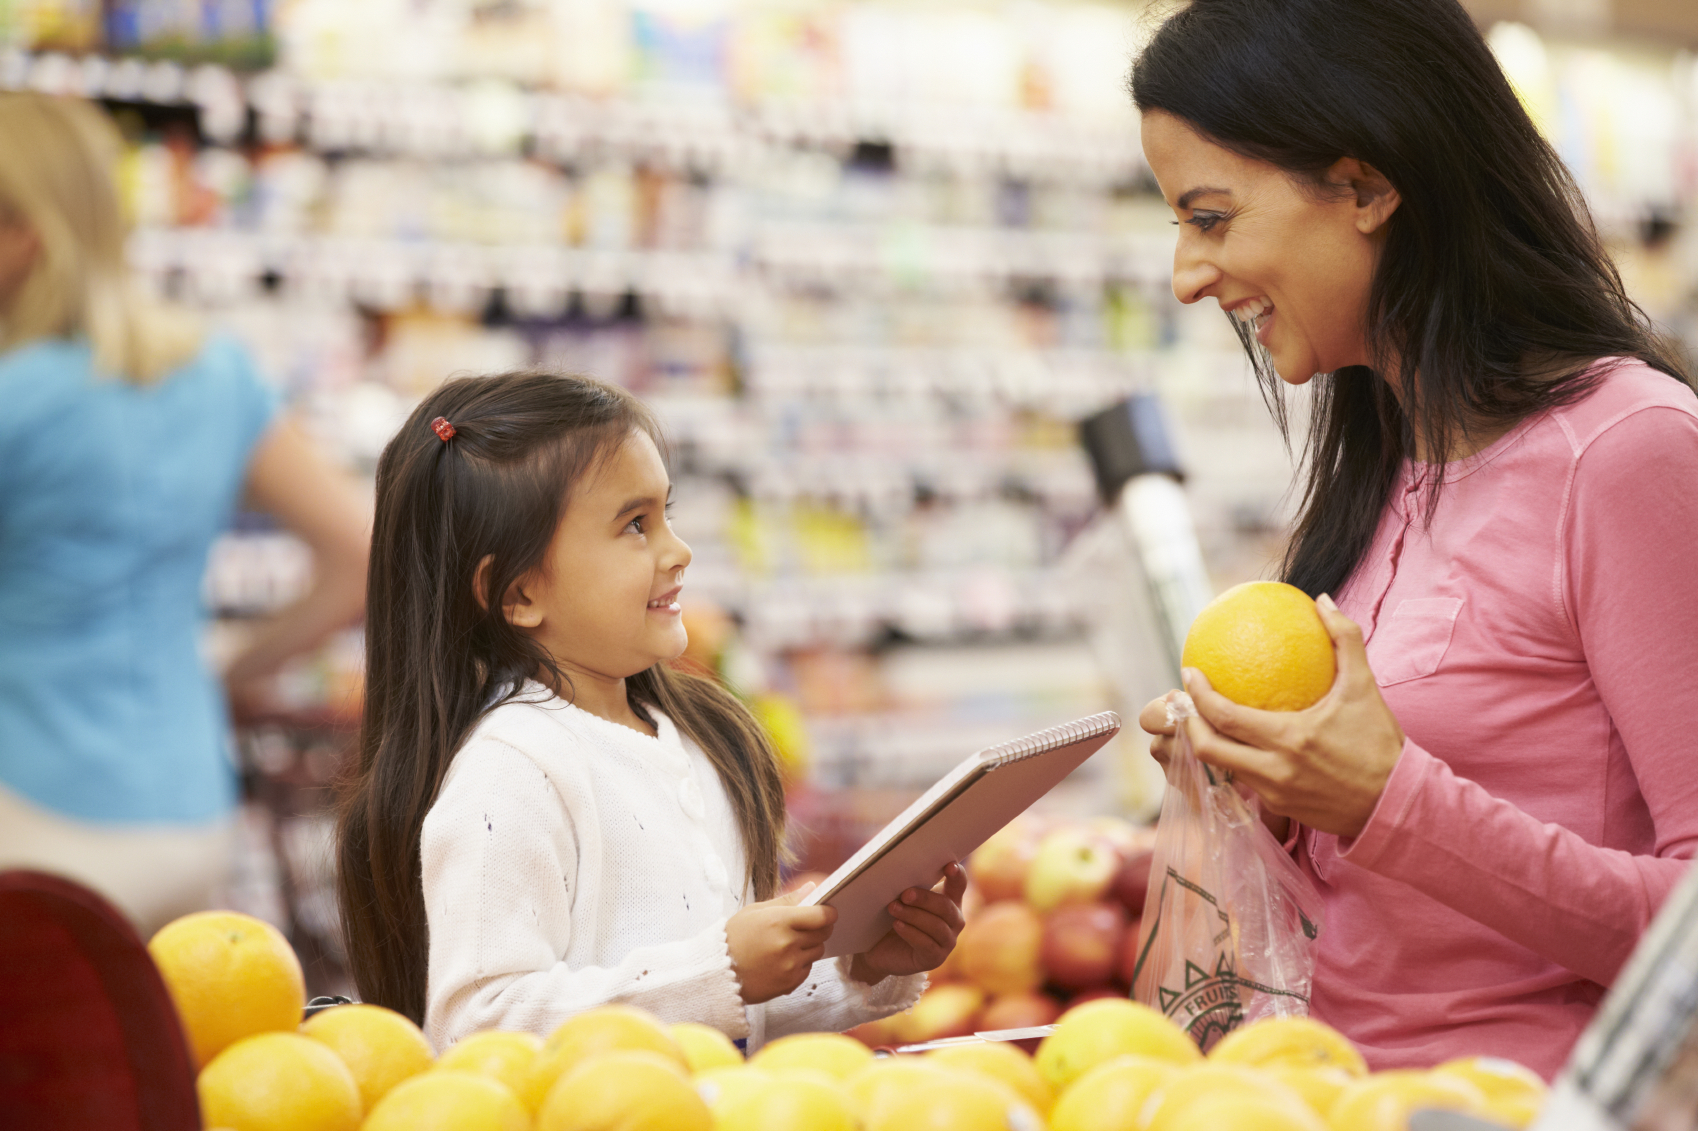 What Children Learn At The Grocery Store